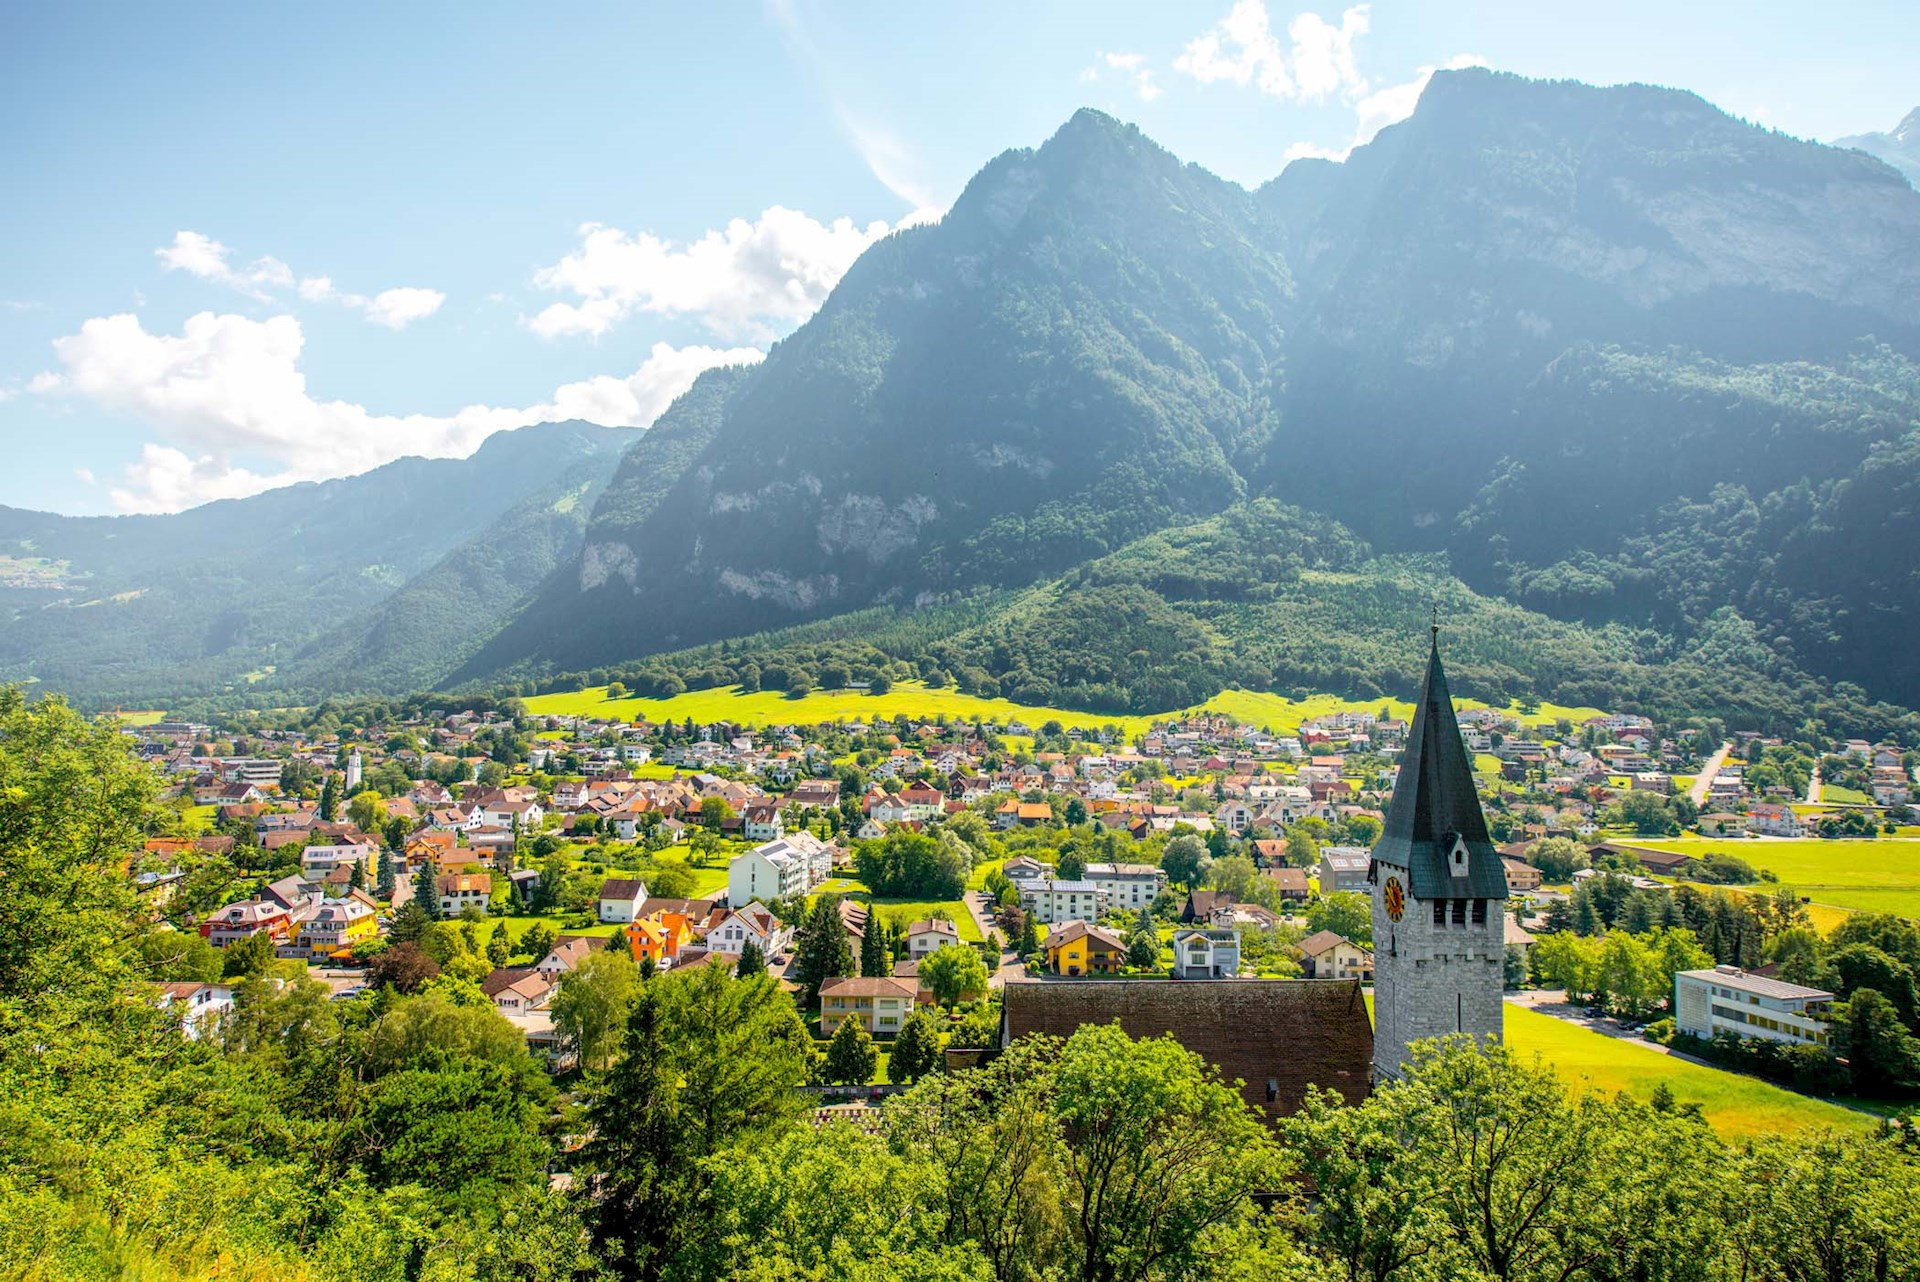 Big Mountains and houses in Liechtenstein